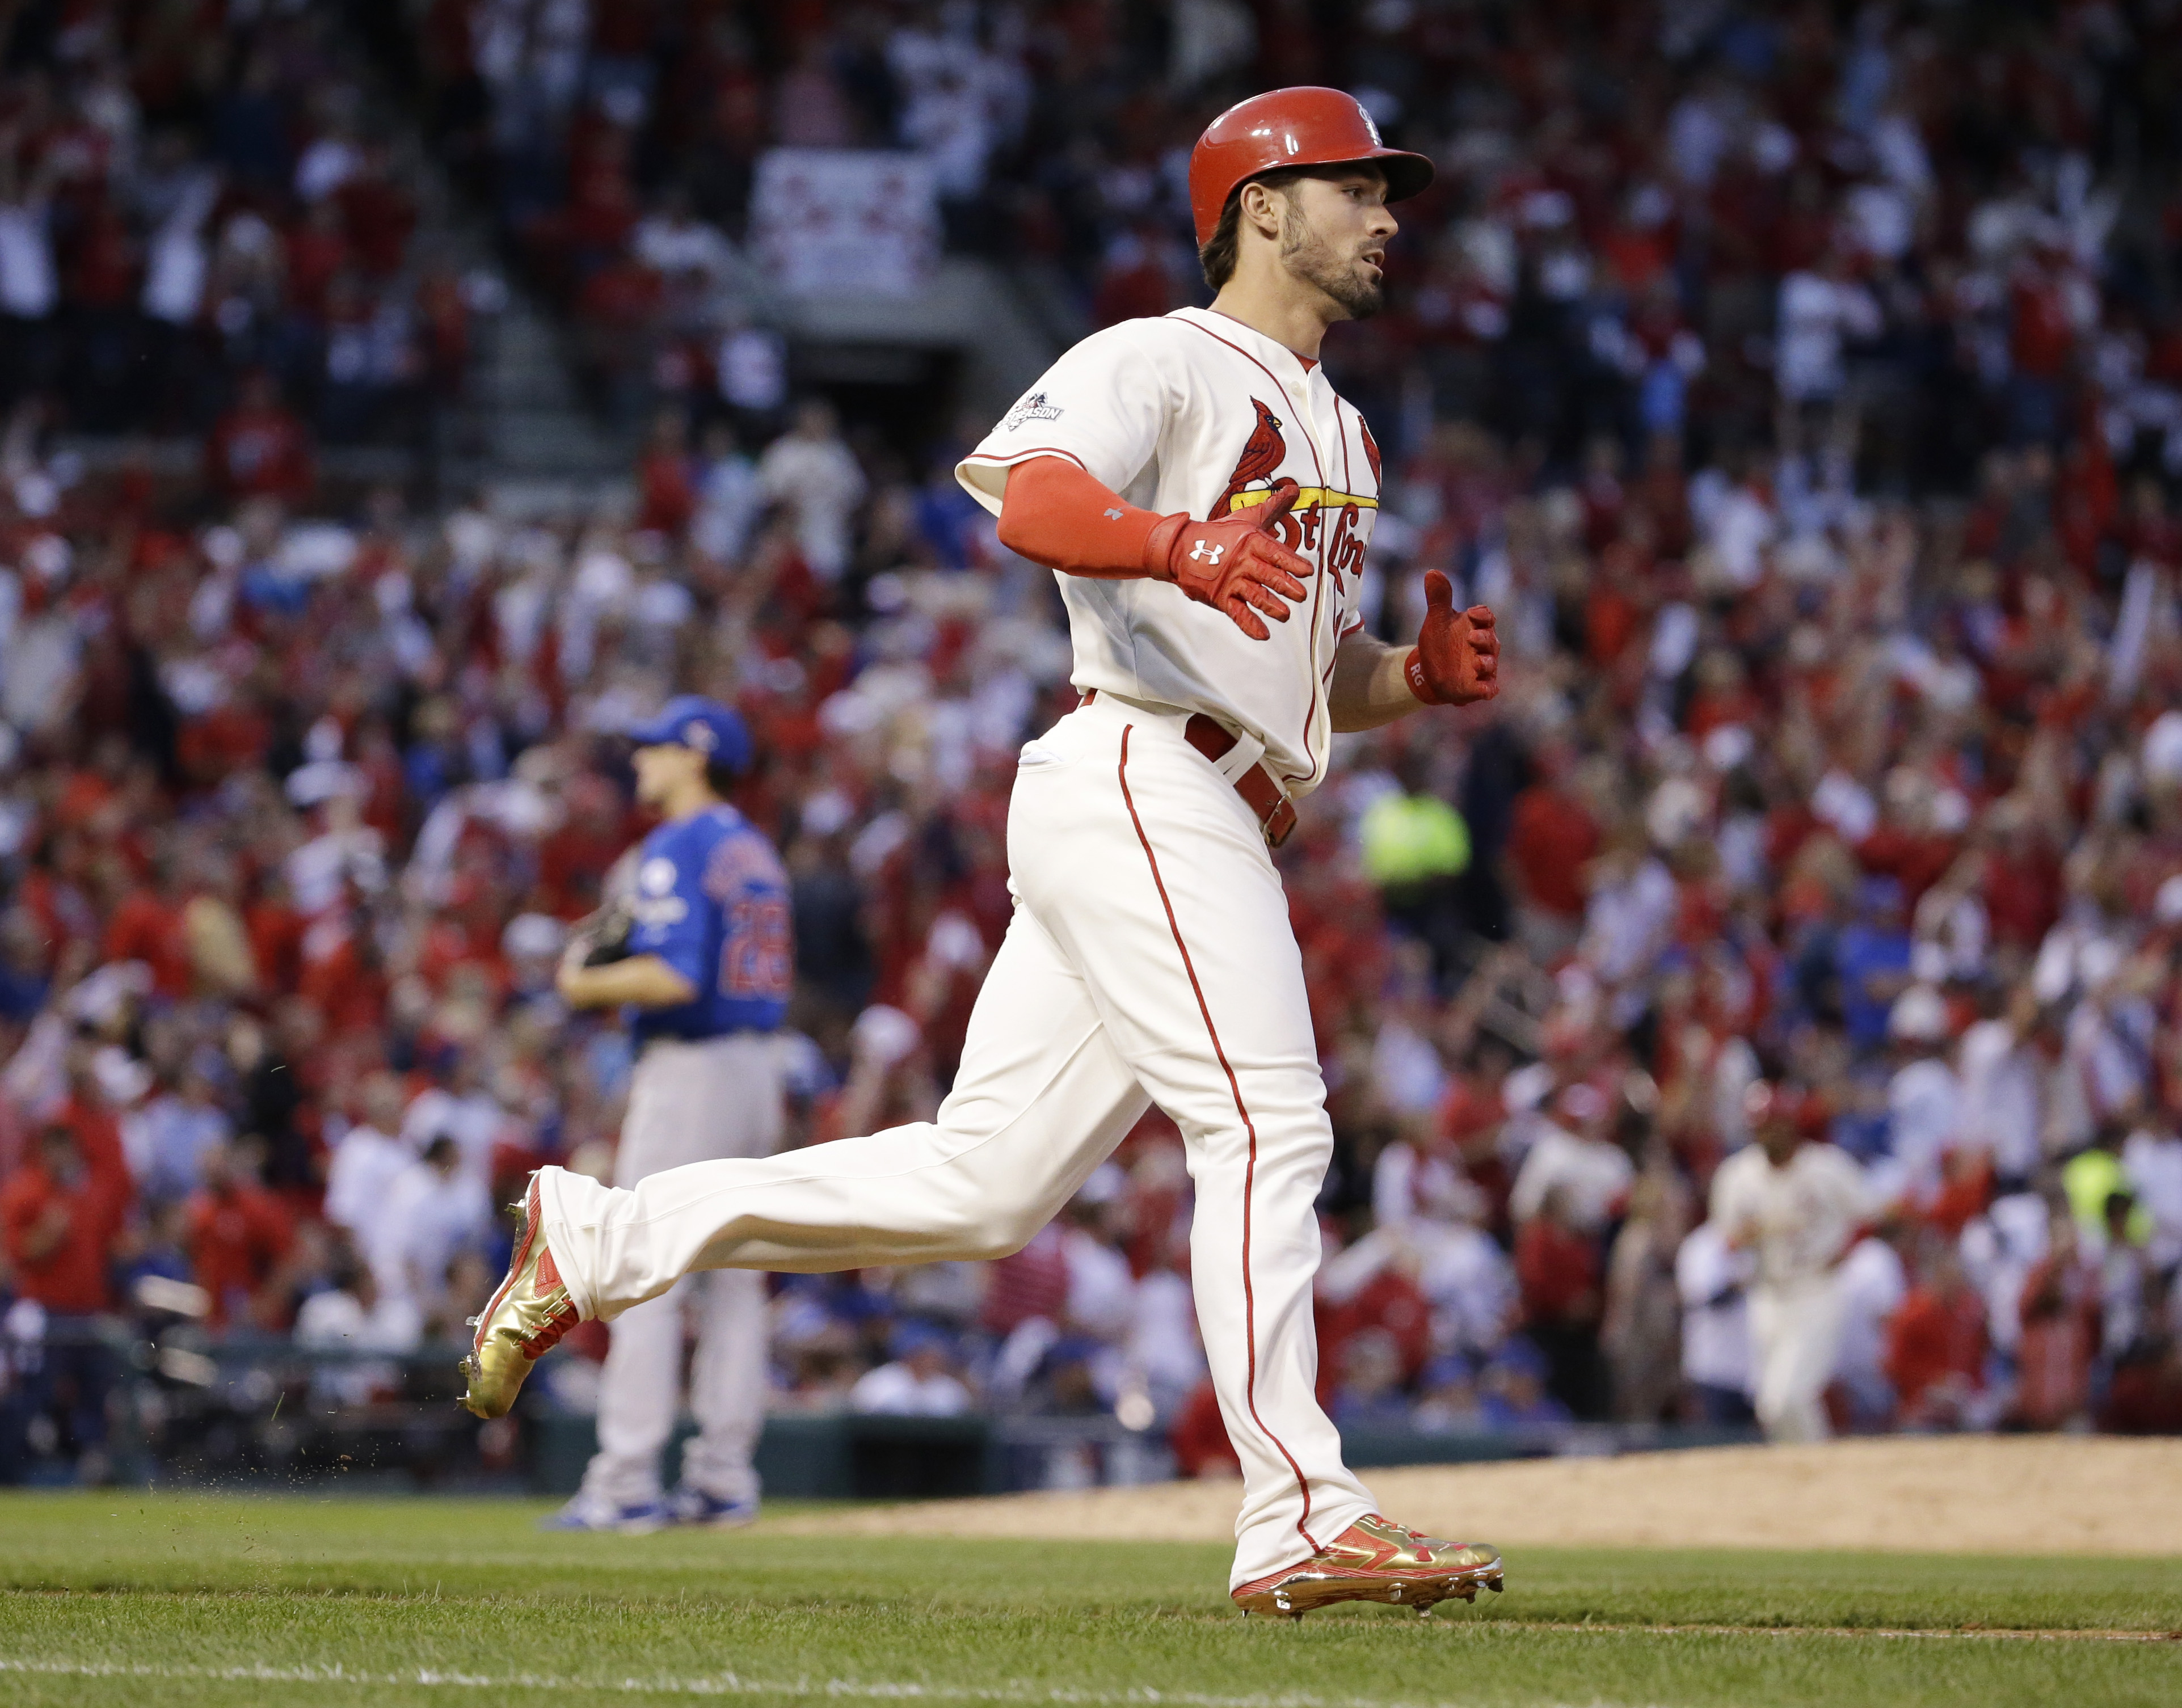 St. Louis Cardinals' Randal Grichuk runs after hitting a solo home run off Chicago Cubs starting pitcher Kyle Hendricks (28)  during the fifth inning of Game 2 in baseball's National League Division Series Saturday, Oct. 10, 2015, in St. Louis. (AP Photo/